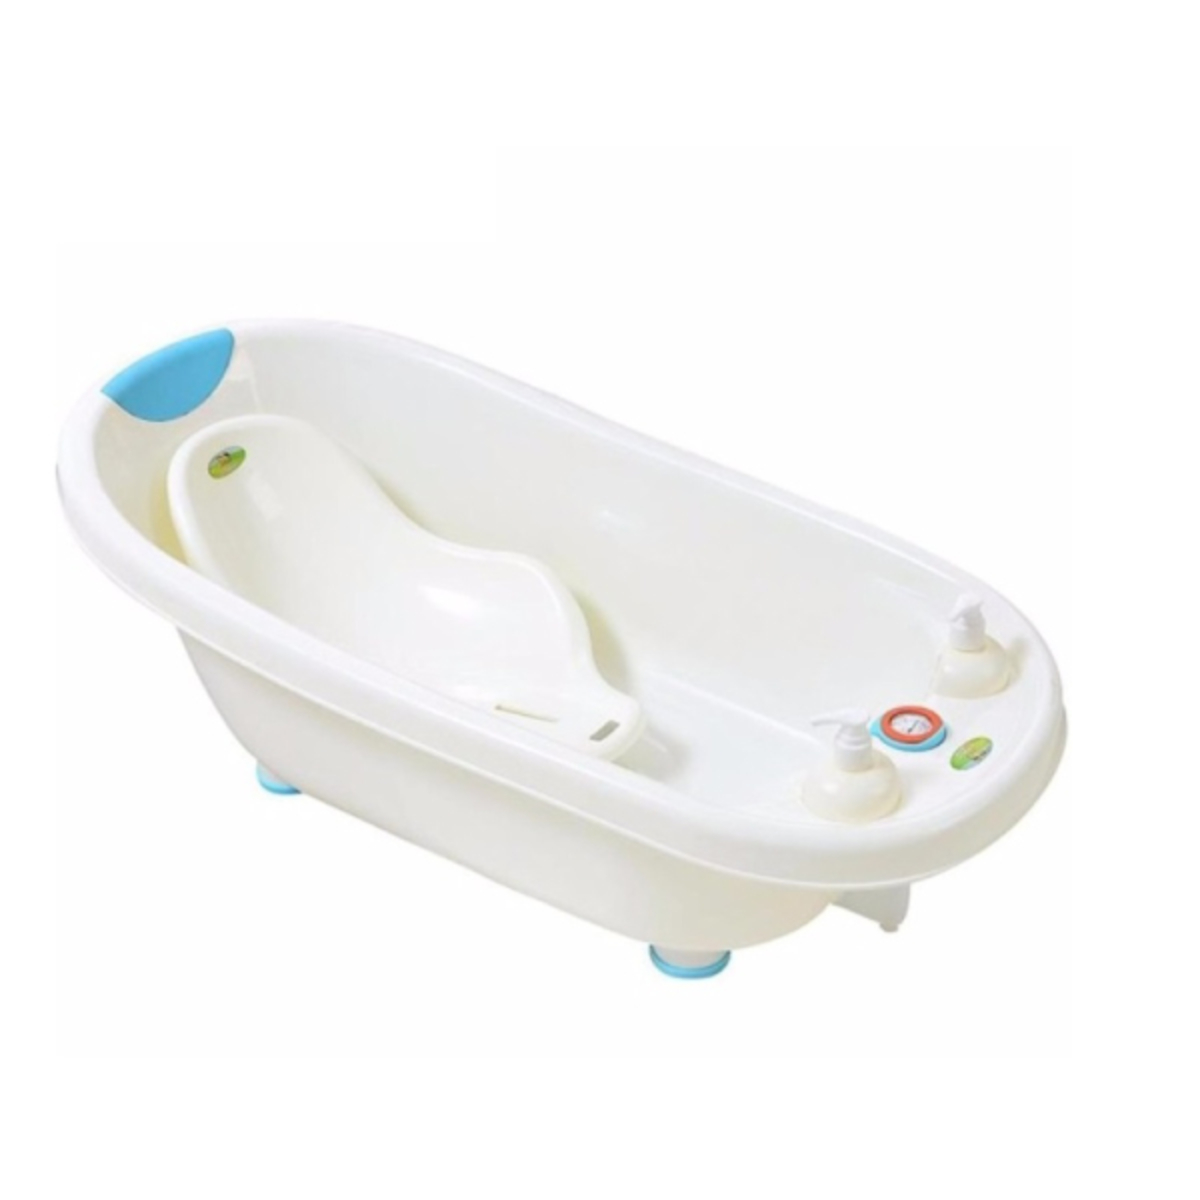 Baby Bathtub Eco-friendly Portable Swimming Tub | Go Shop